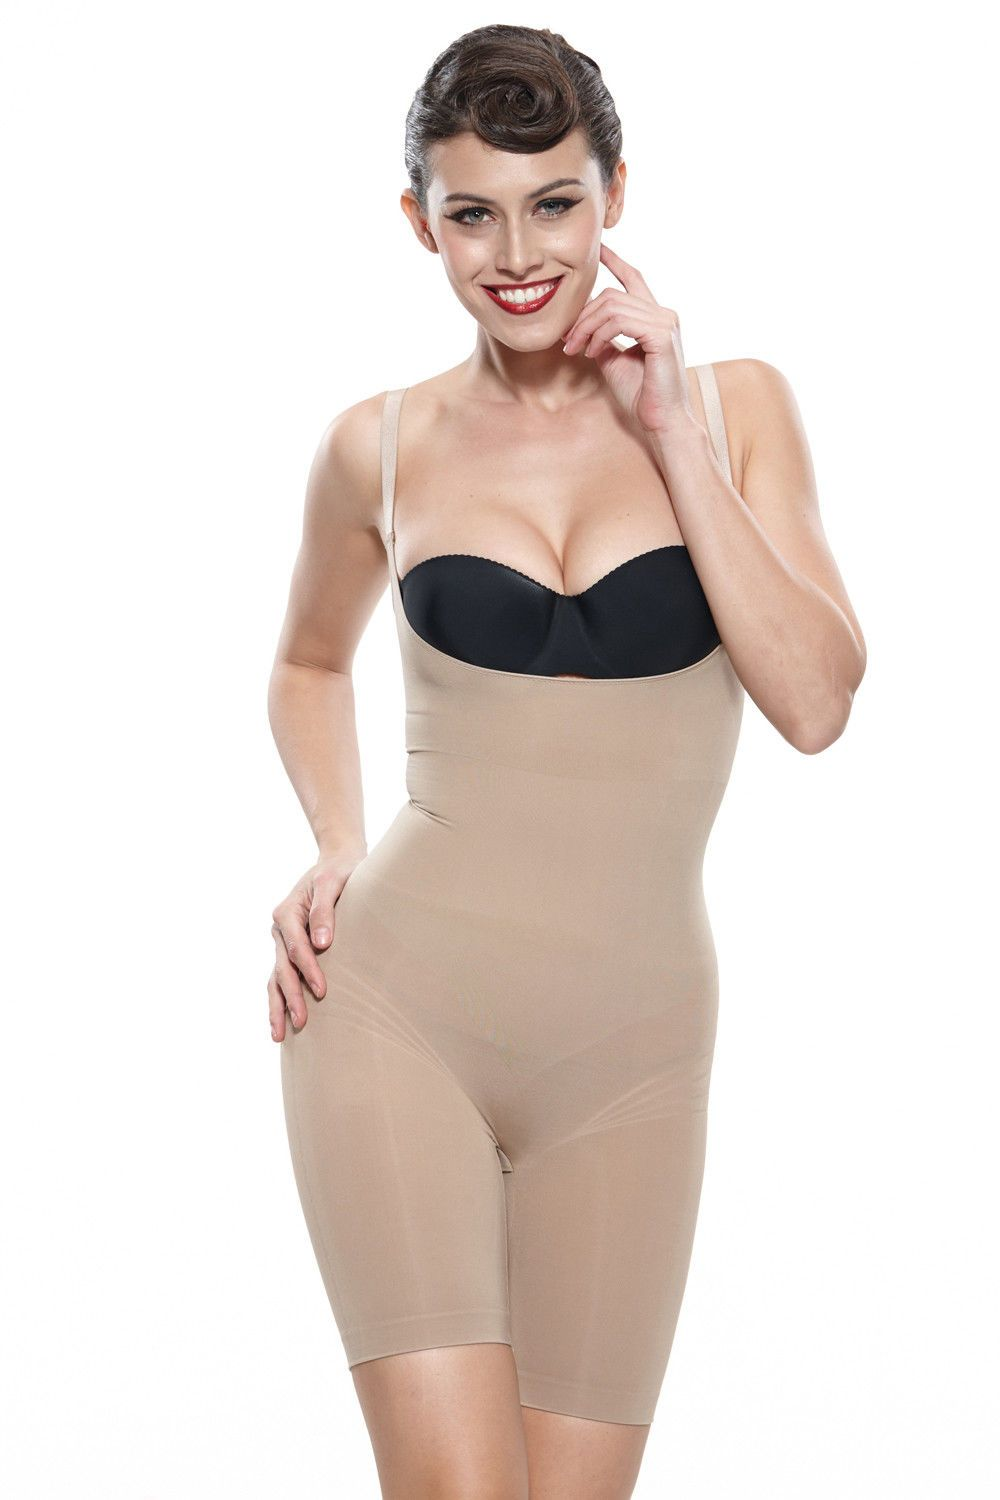 a802913a16 Lady Shapewear Slimming Body Shaper Overbust Mid Thigh Firm Control  Bodysuits